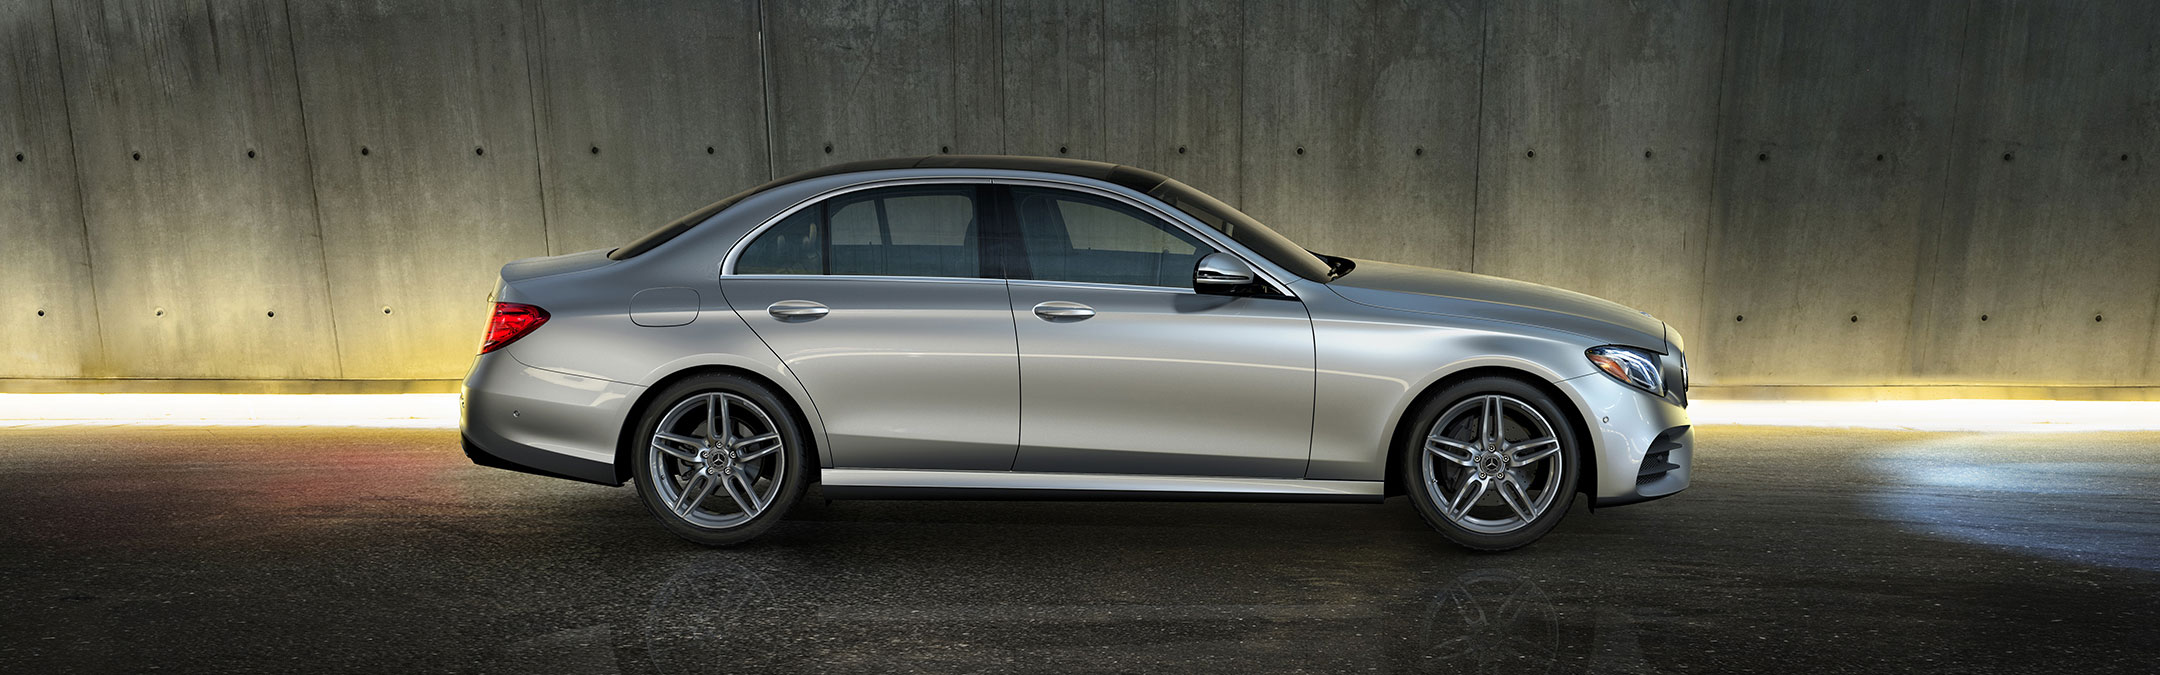 Pre owned mercedes benz in canada mercedes benz of autos for Performance mercedes benz st catharines